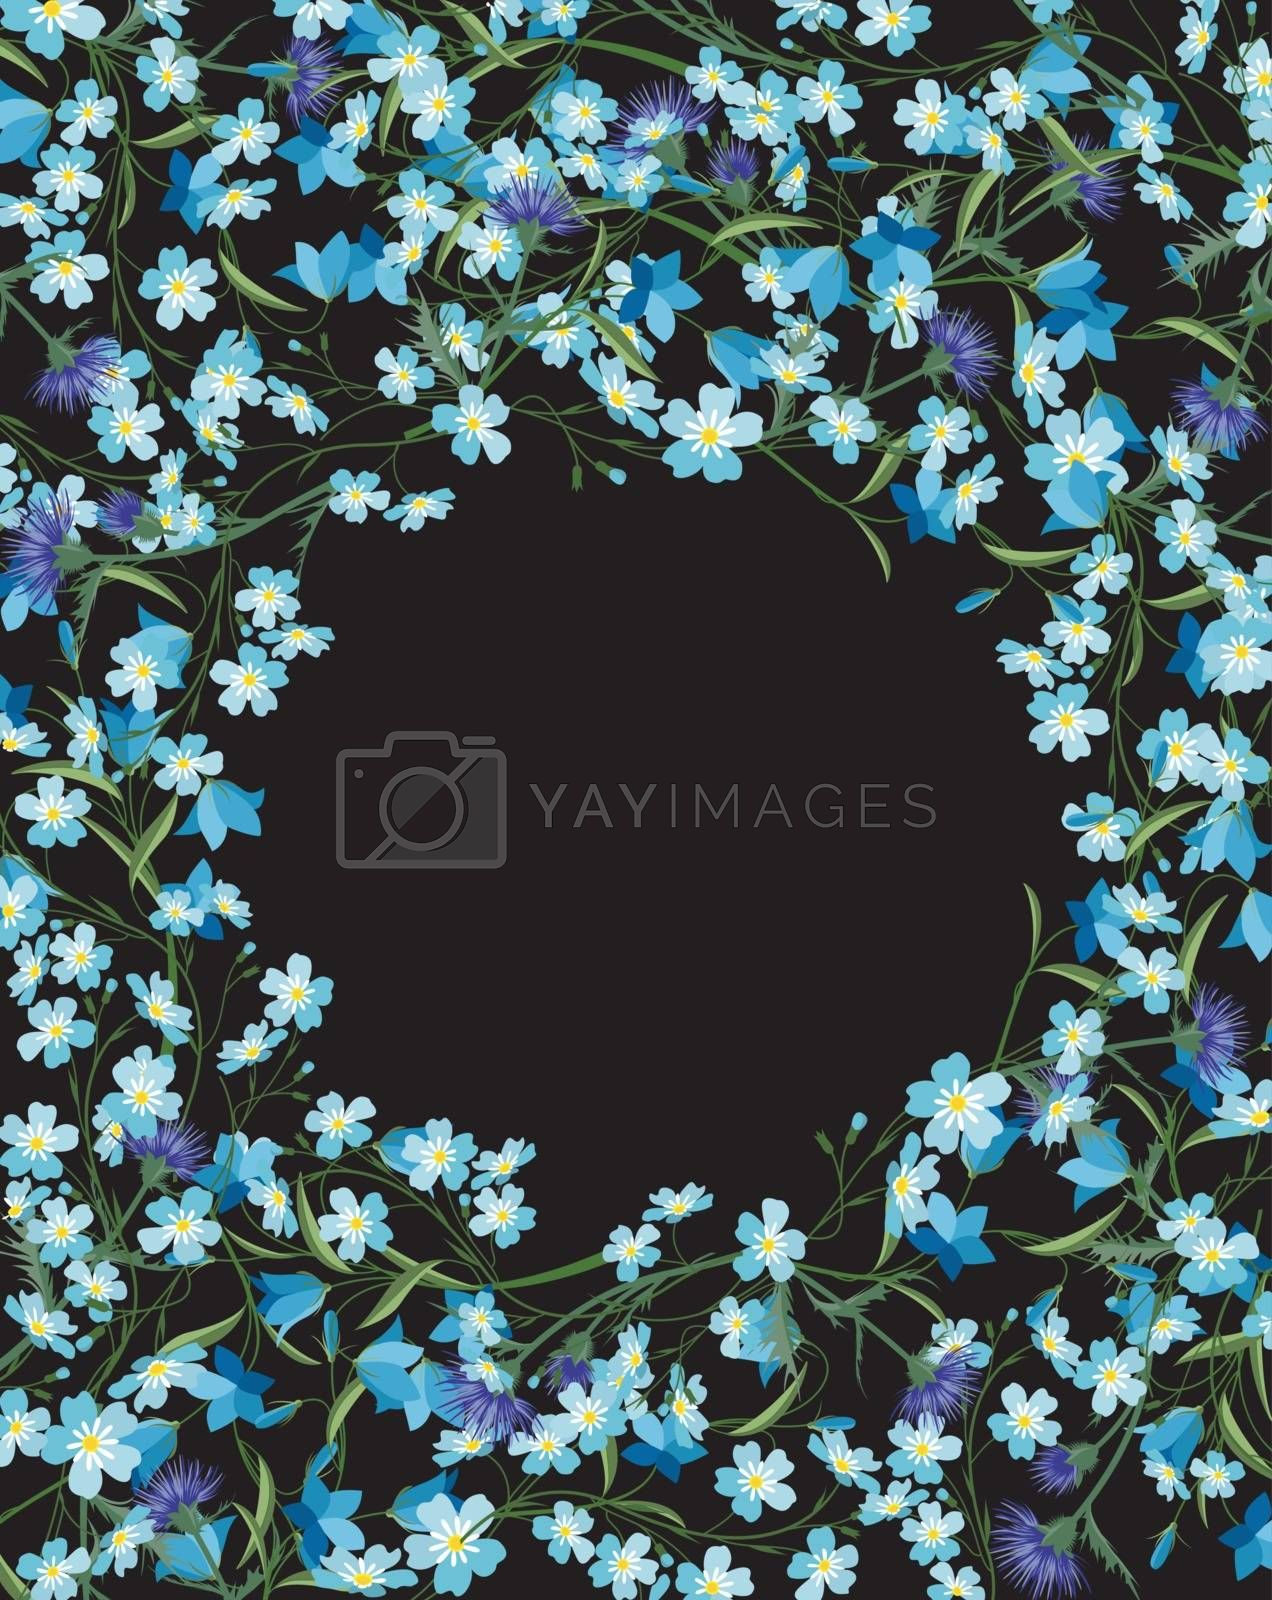 Vector illustration of colorful flowers. Summer floral decorations on a dark background.